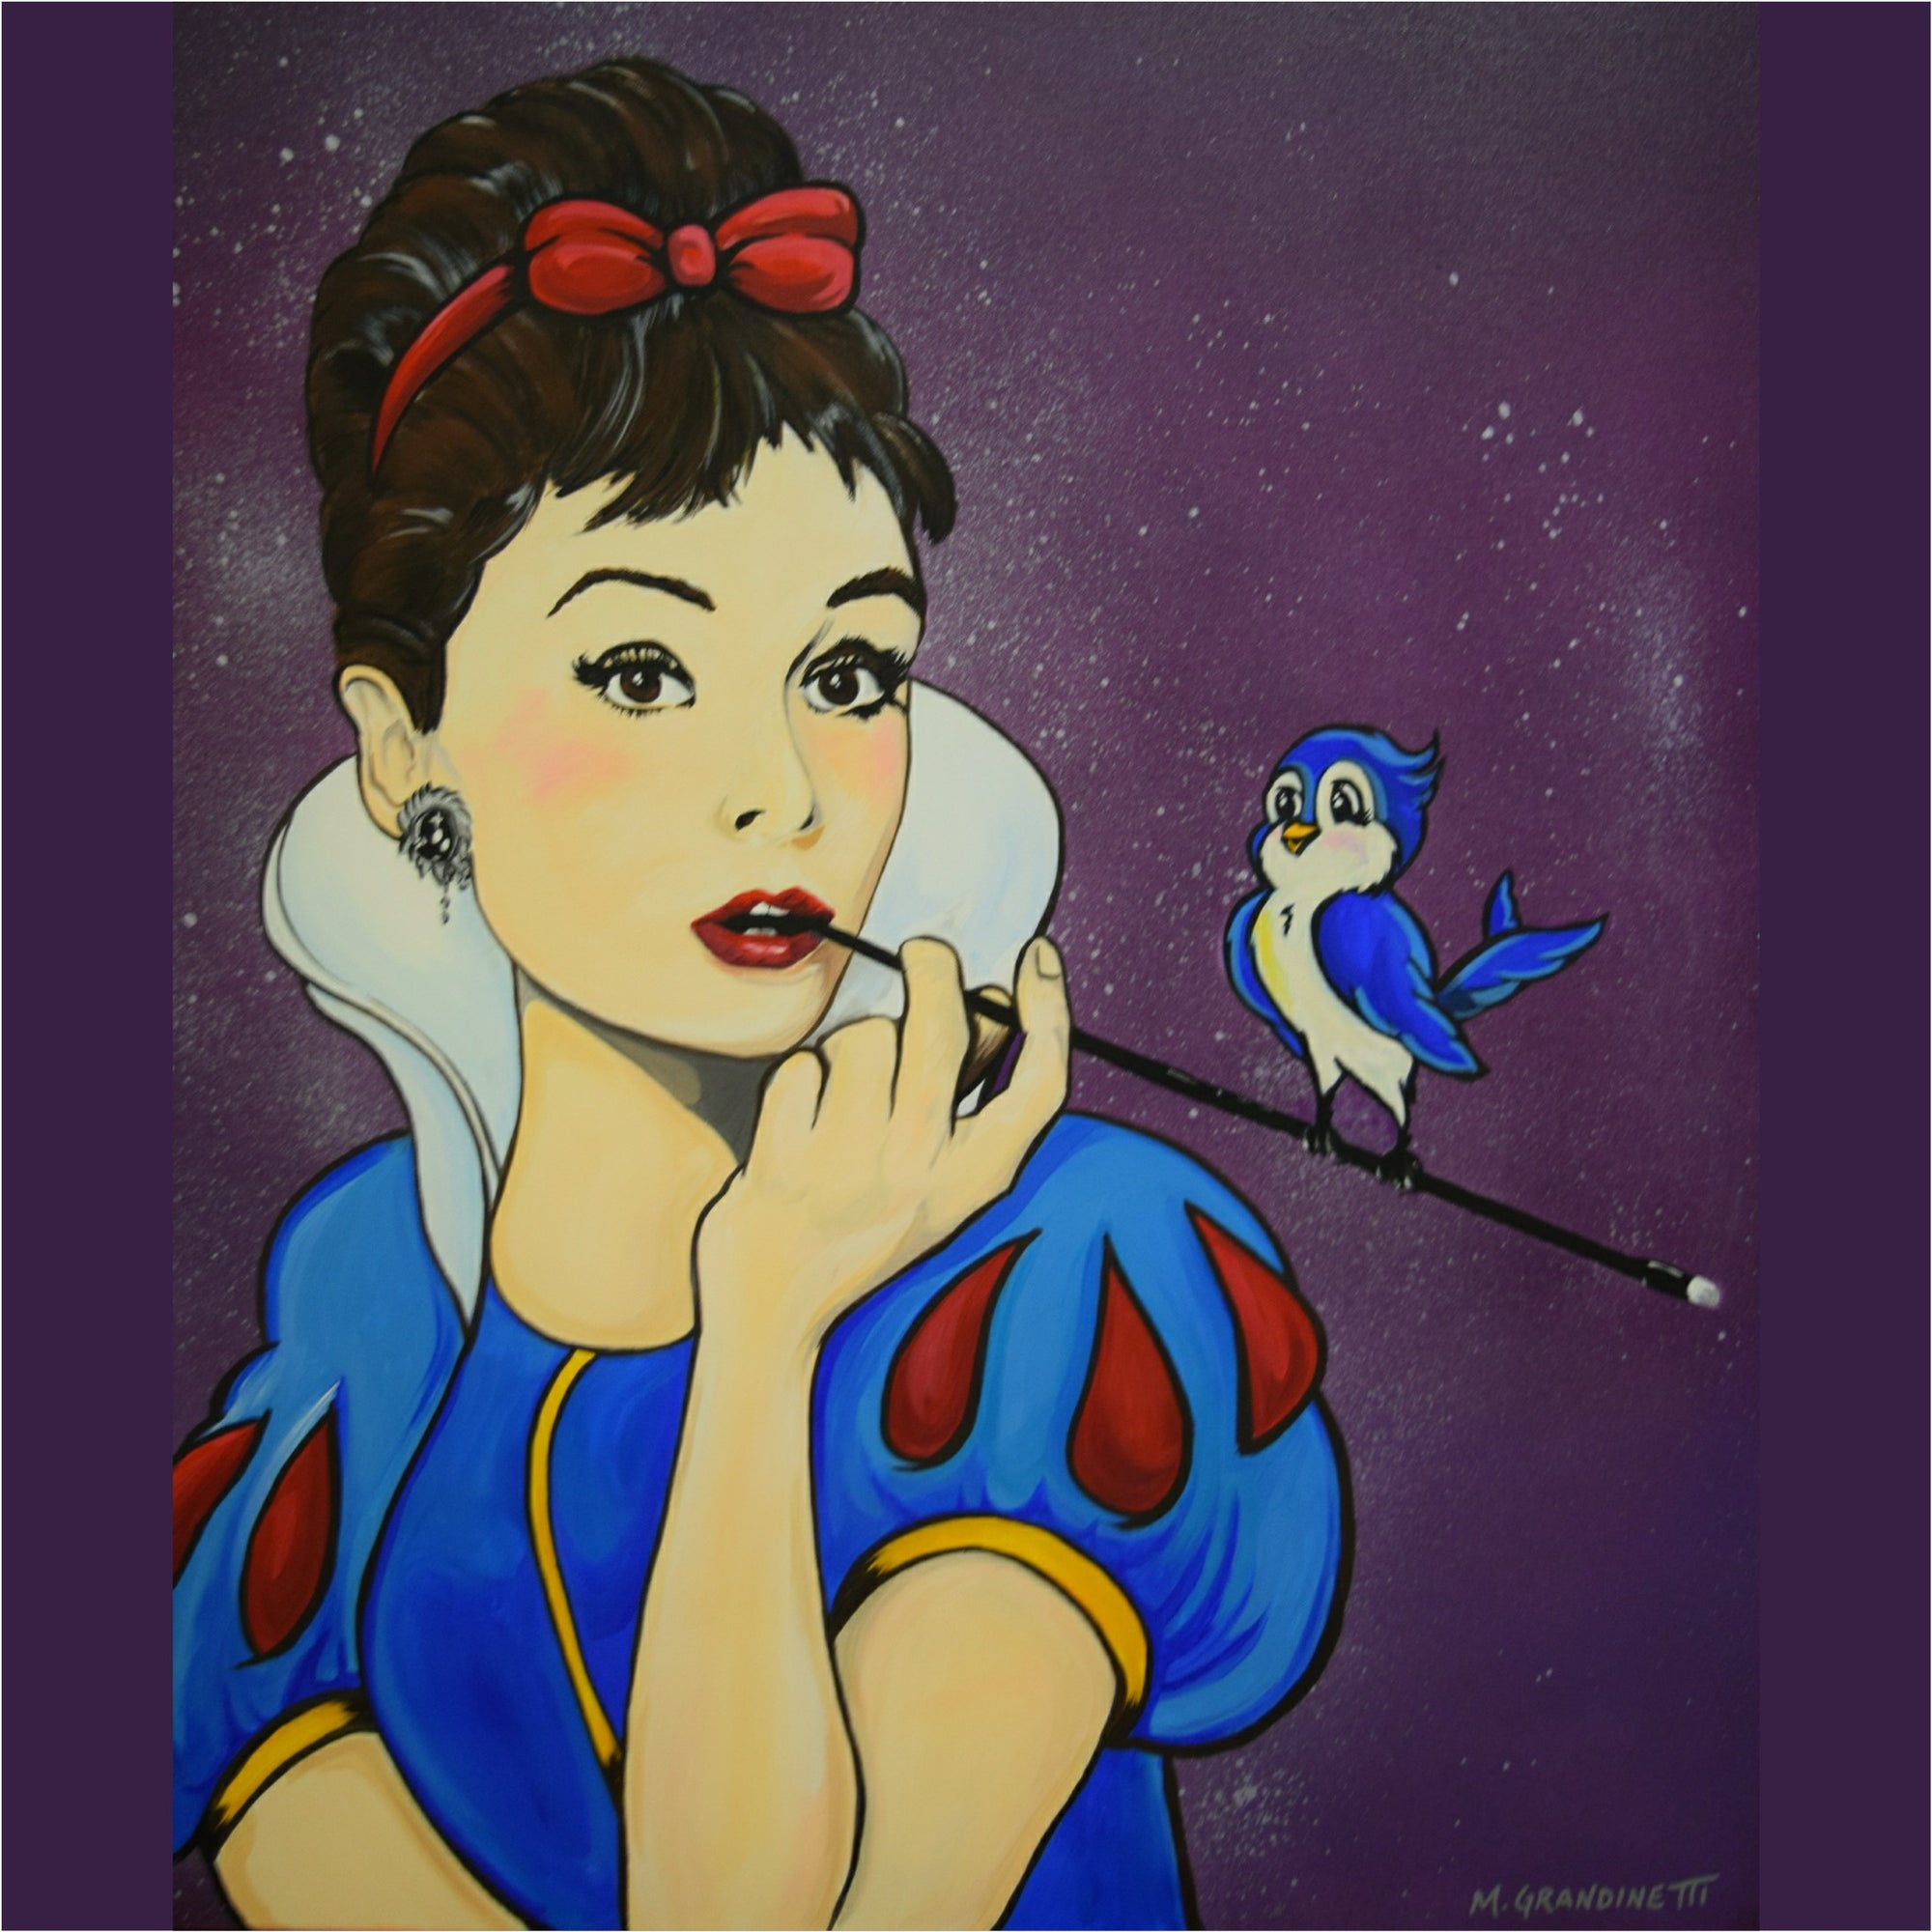 Audrey Hepburn meets Snow White